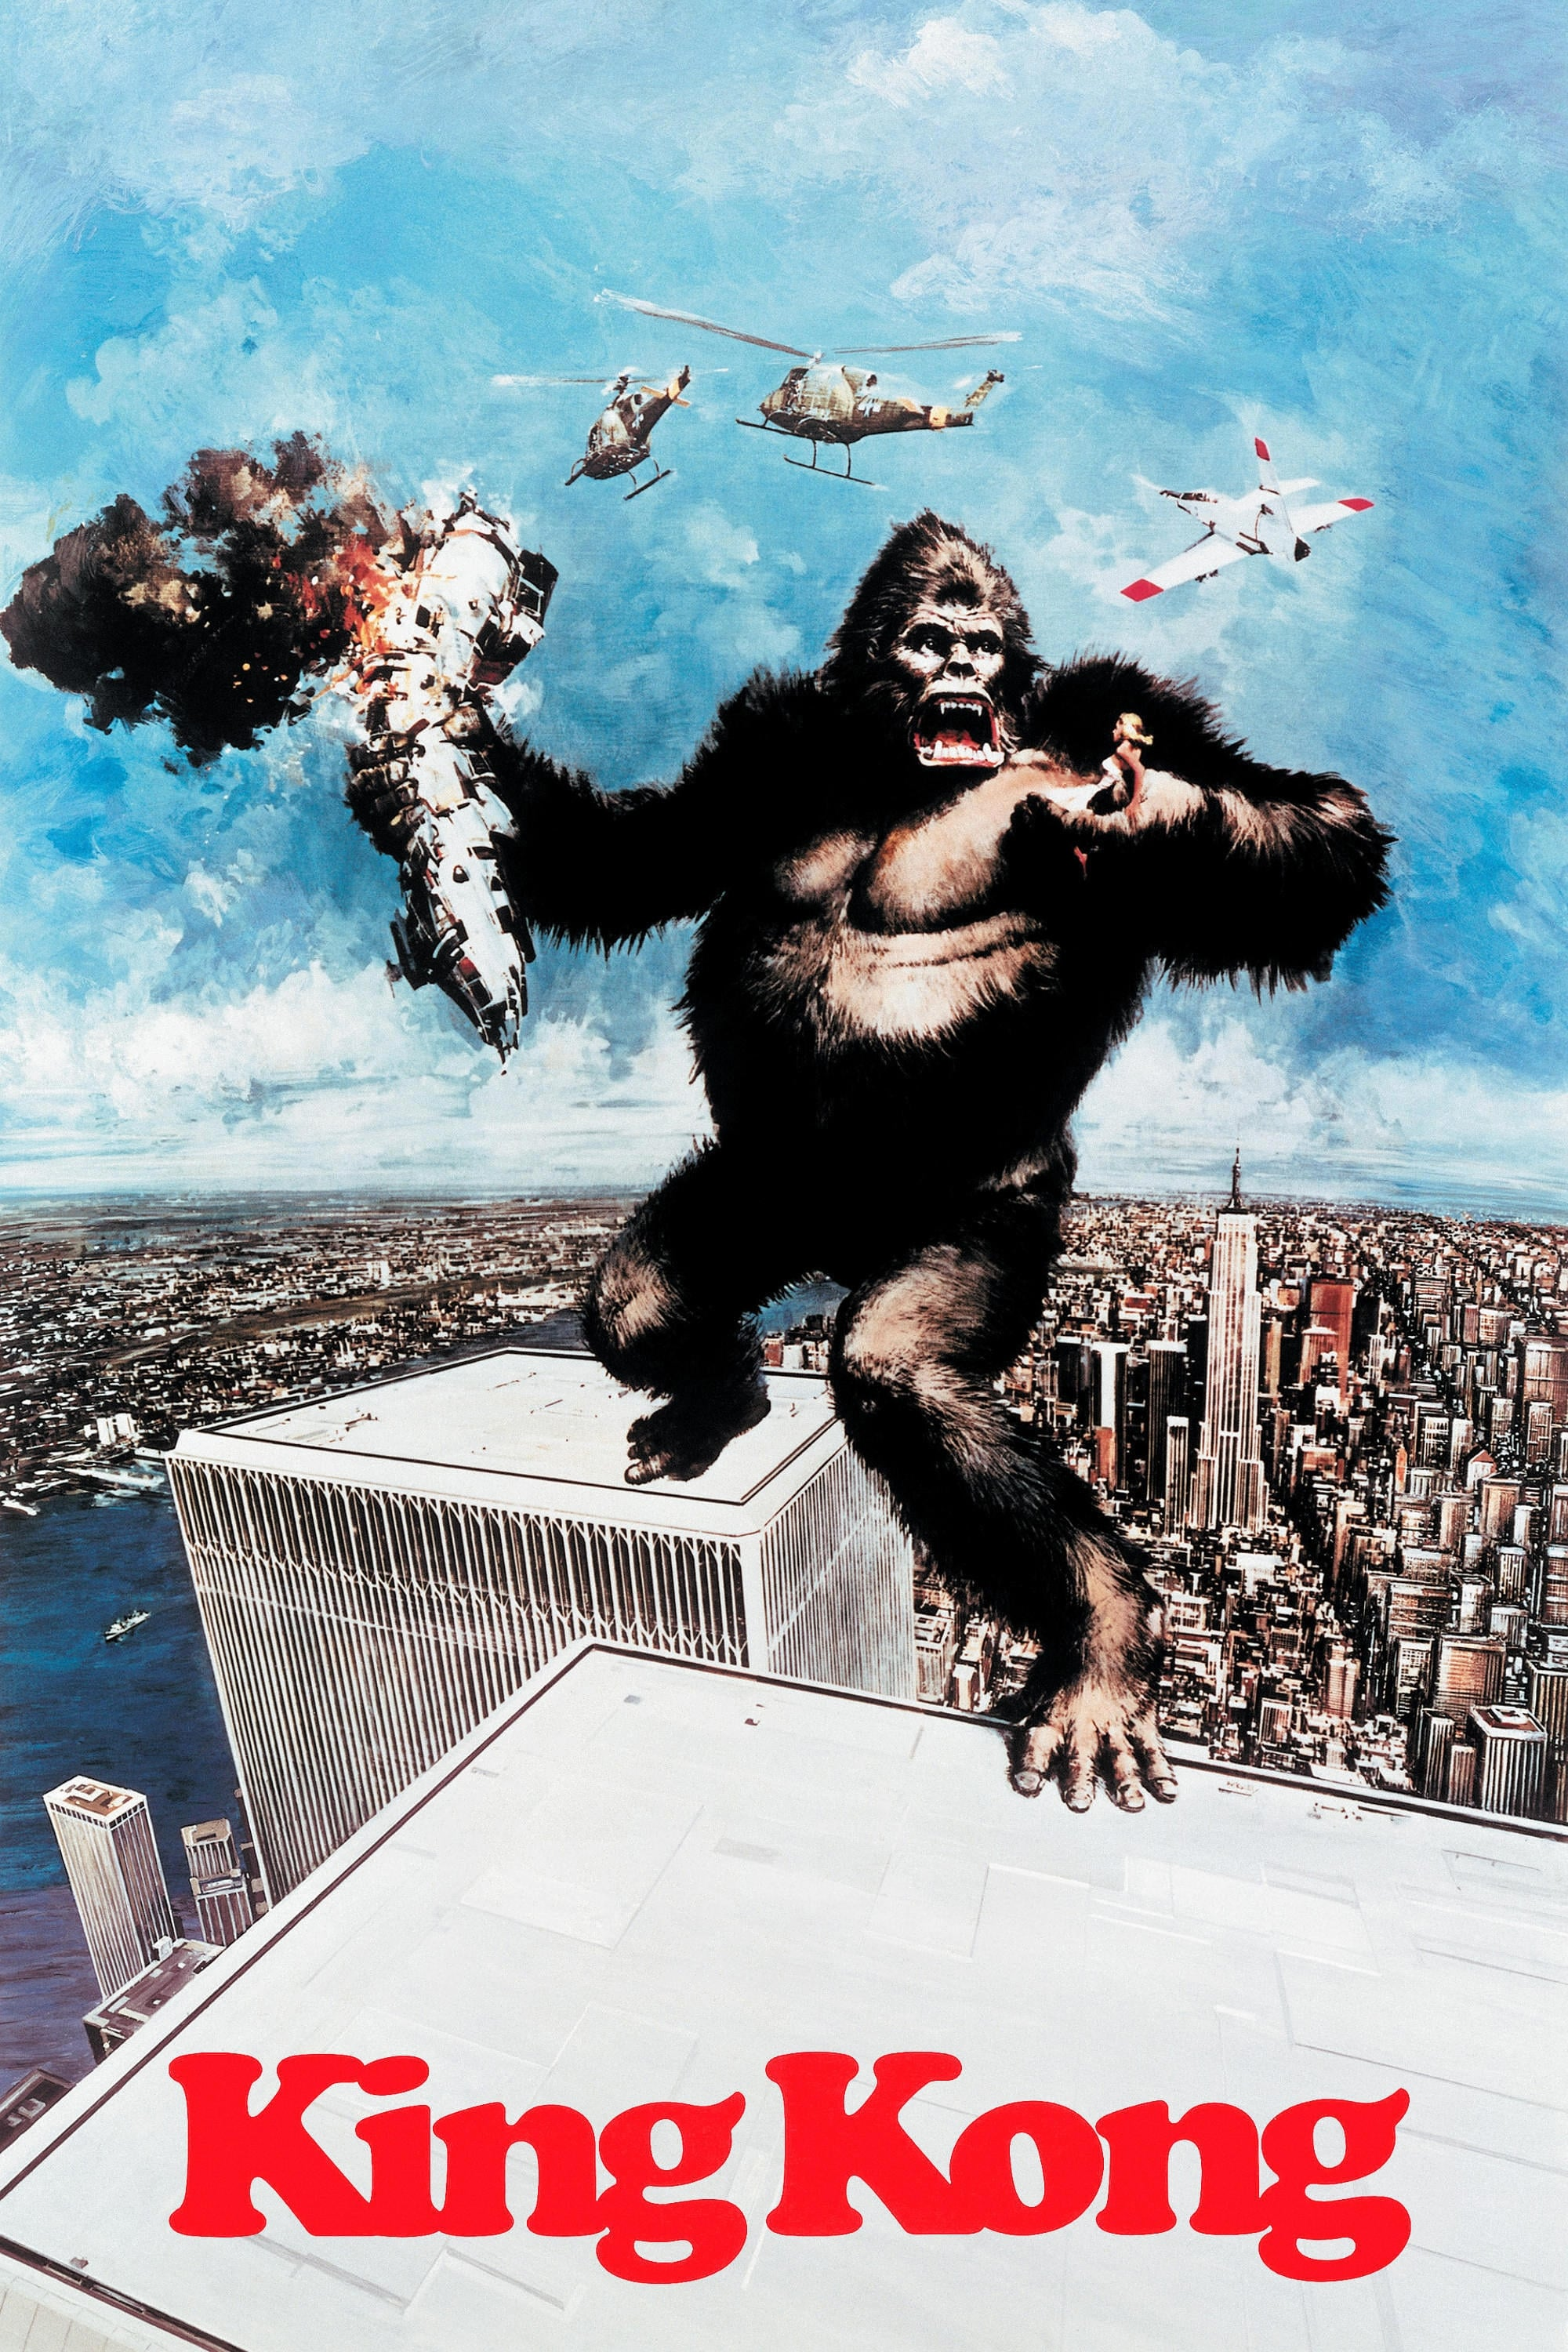 King Kong - 123movies | Watch Online Full Movies TV Series ...